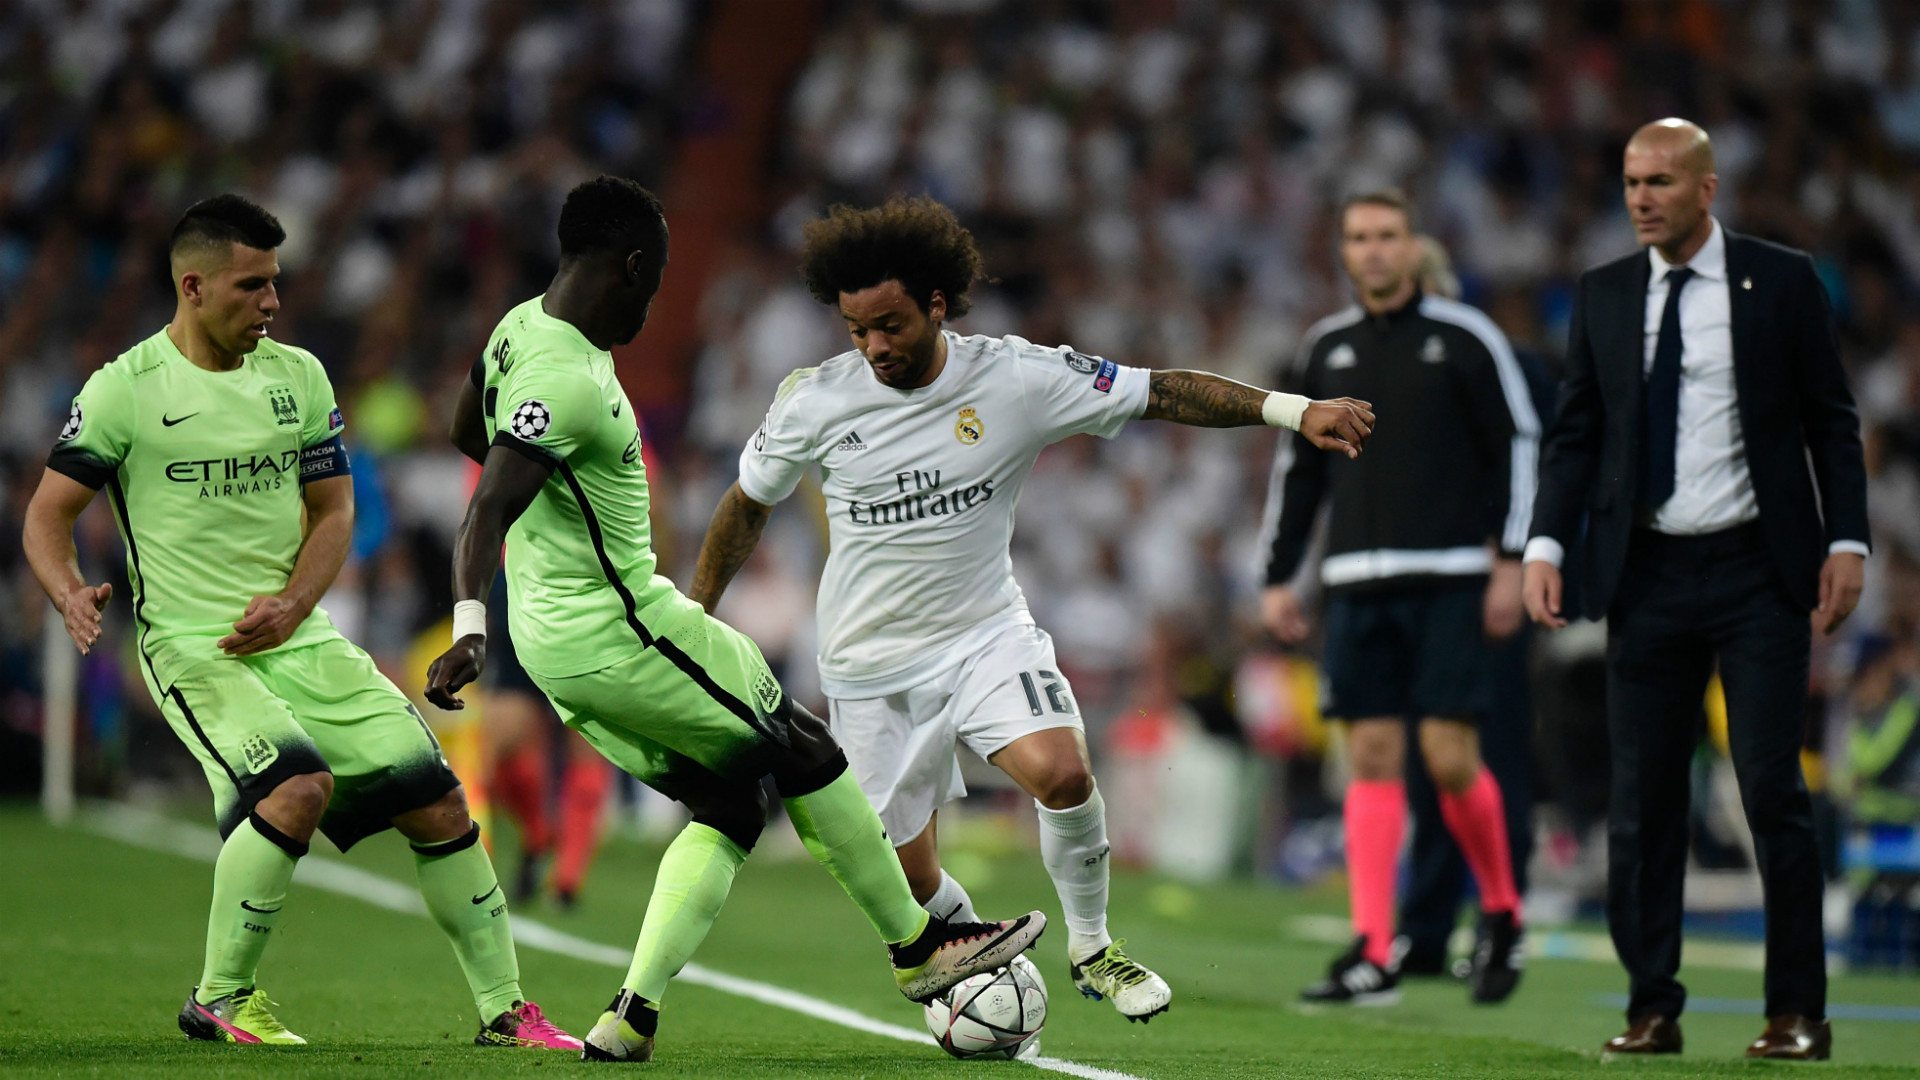 Real Madrid vs. Manchester United EN VIVO ONLINE Supercopa de Europa